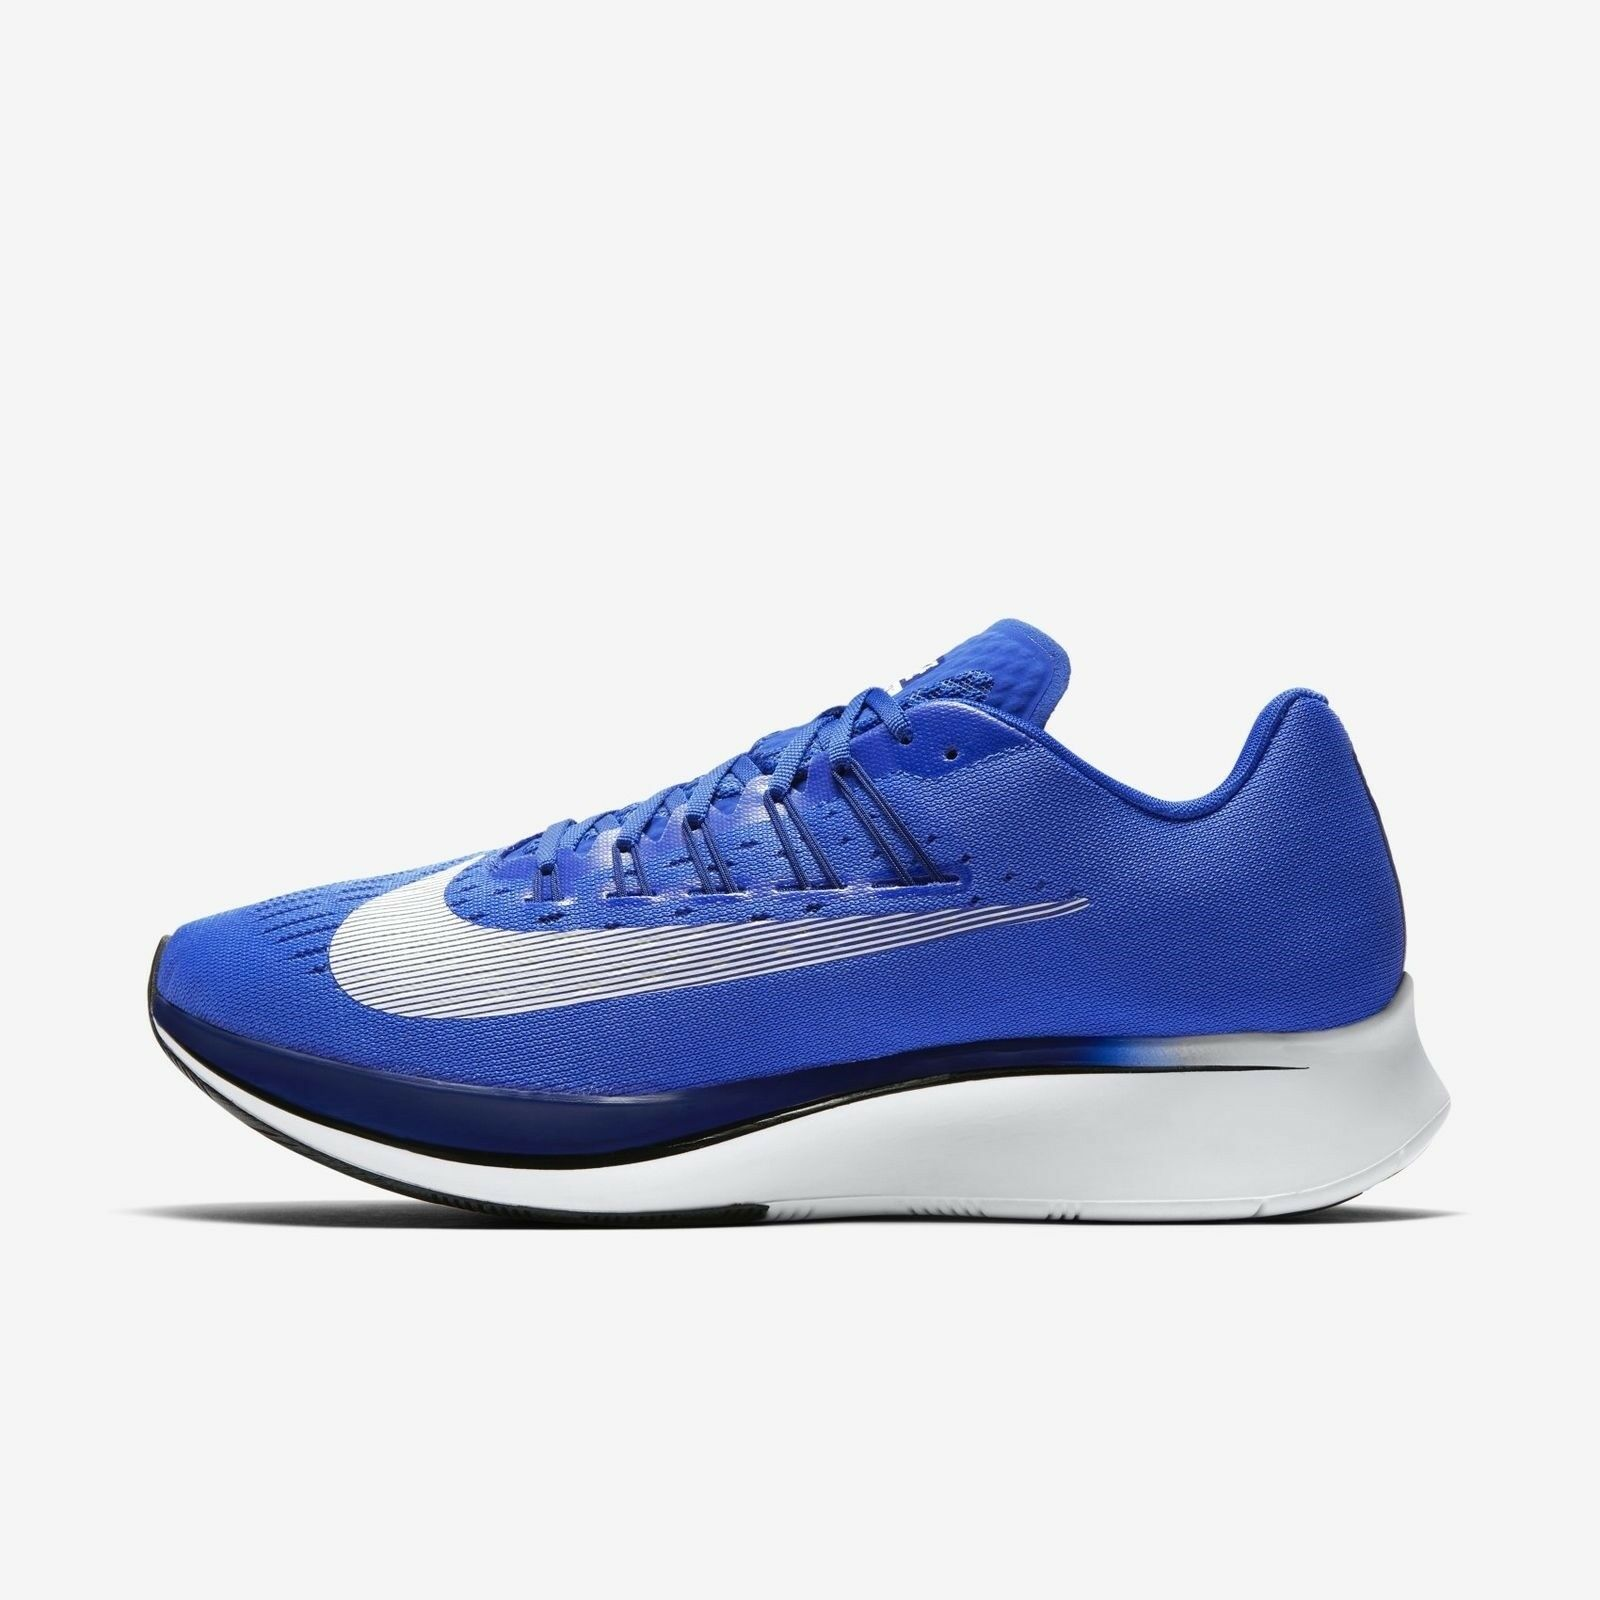 Men's Nike Zoom Fly Running shoes Royal Deep Royal blueee Size 13 880848 411 NIB